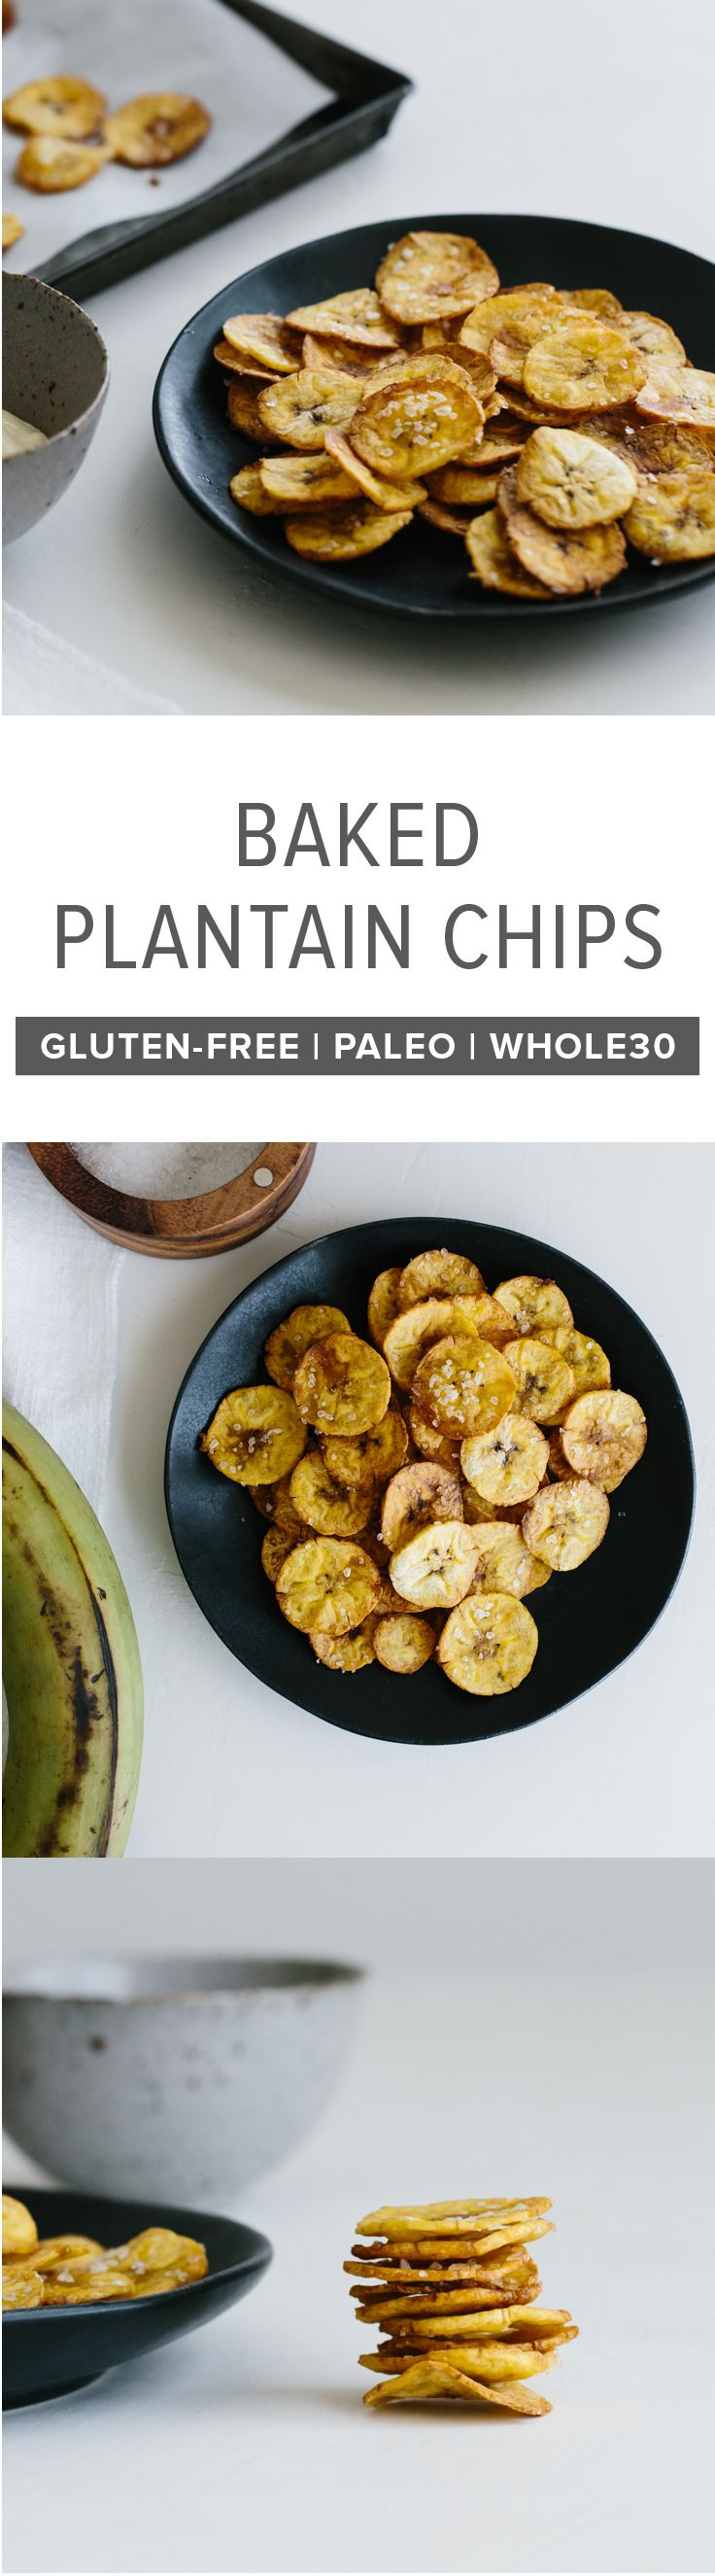 (gluten-free, paleo, whole30) These baked plantain chips are a healthy, homemade snack for when you're craving something salty and crunchy.